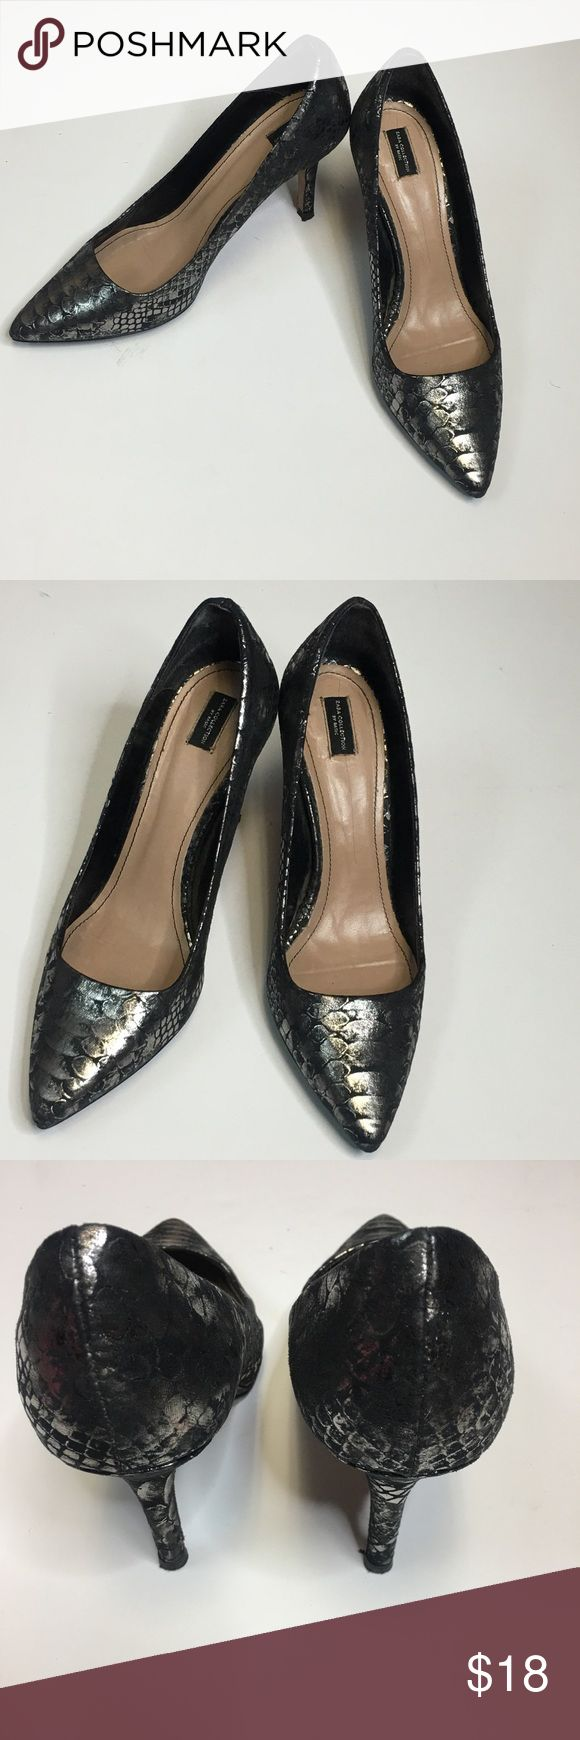 "Zara  Metallic Silver & Black Heels. GORGEOUS Metallic Silver/Grey and Black Classic Pumps                                                                     ZARA Shoes Collection  Bottom of shoe shoe sign of wear . man made material   ~ SIZE 39  Fit a size 8 USA, 6 UK) Please know your size in Zara sizing ~ Covered Heel 3.25"" ~ Retail $59 Zara Shoes Heels"